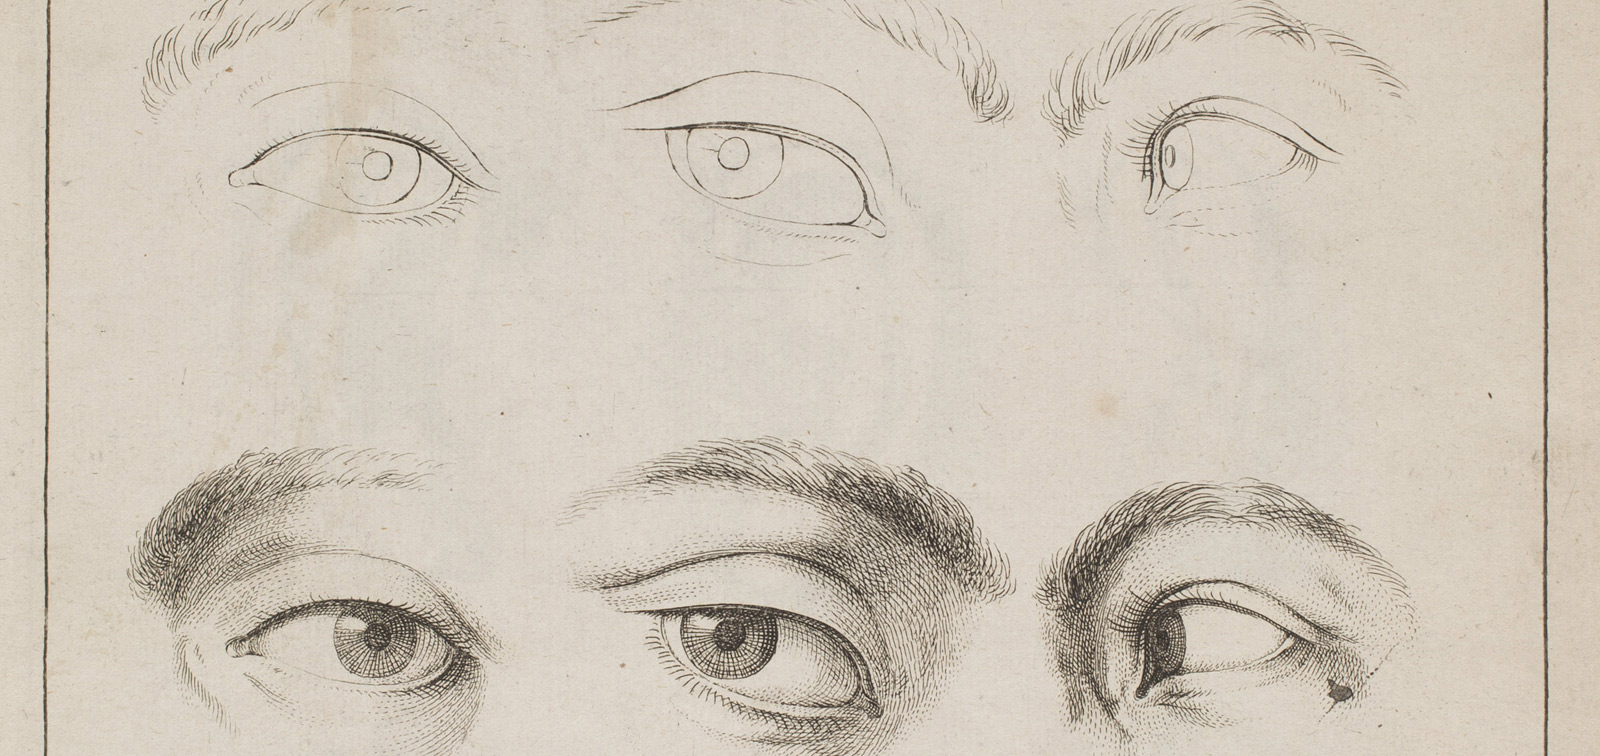 Master of Paper. Drawing Books from the Seventeenth to the Nineteenth Centuries